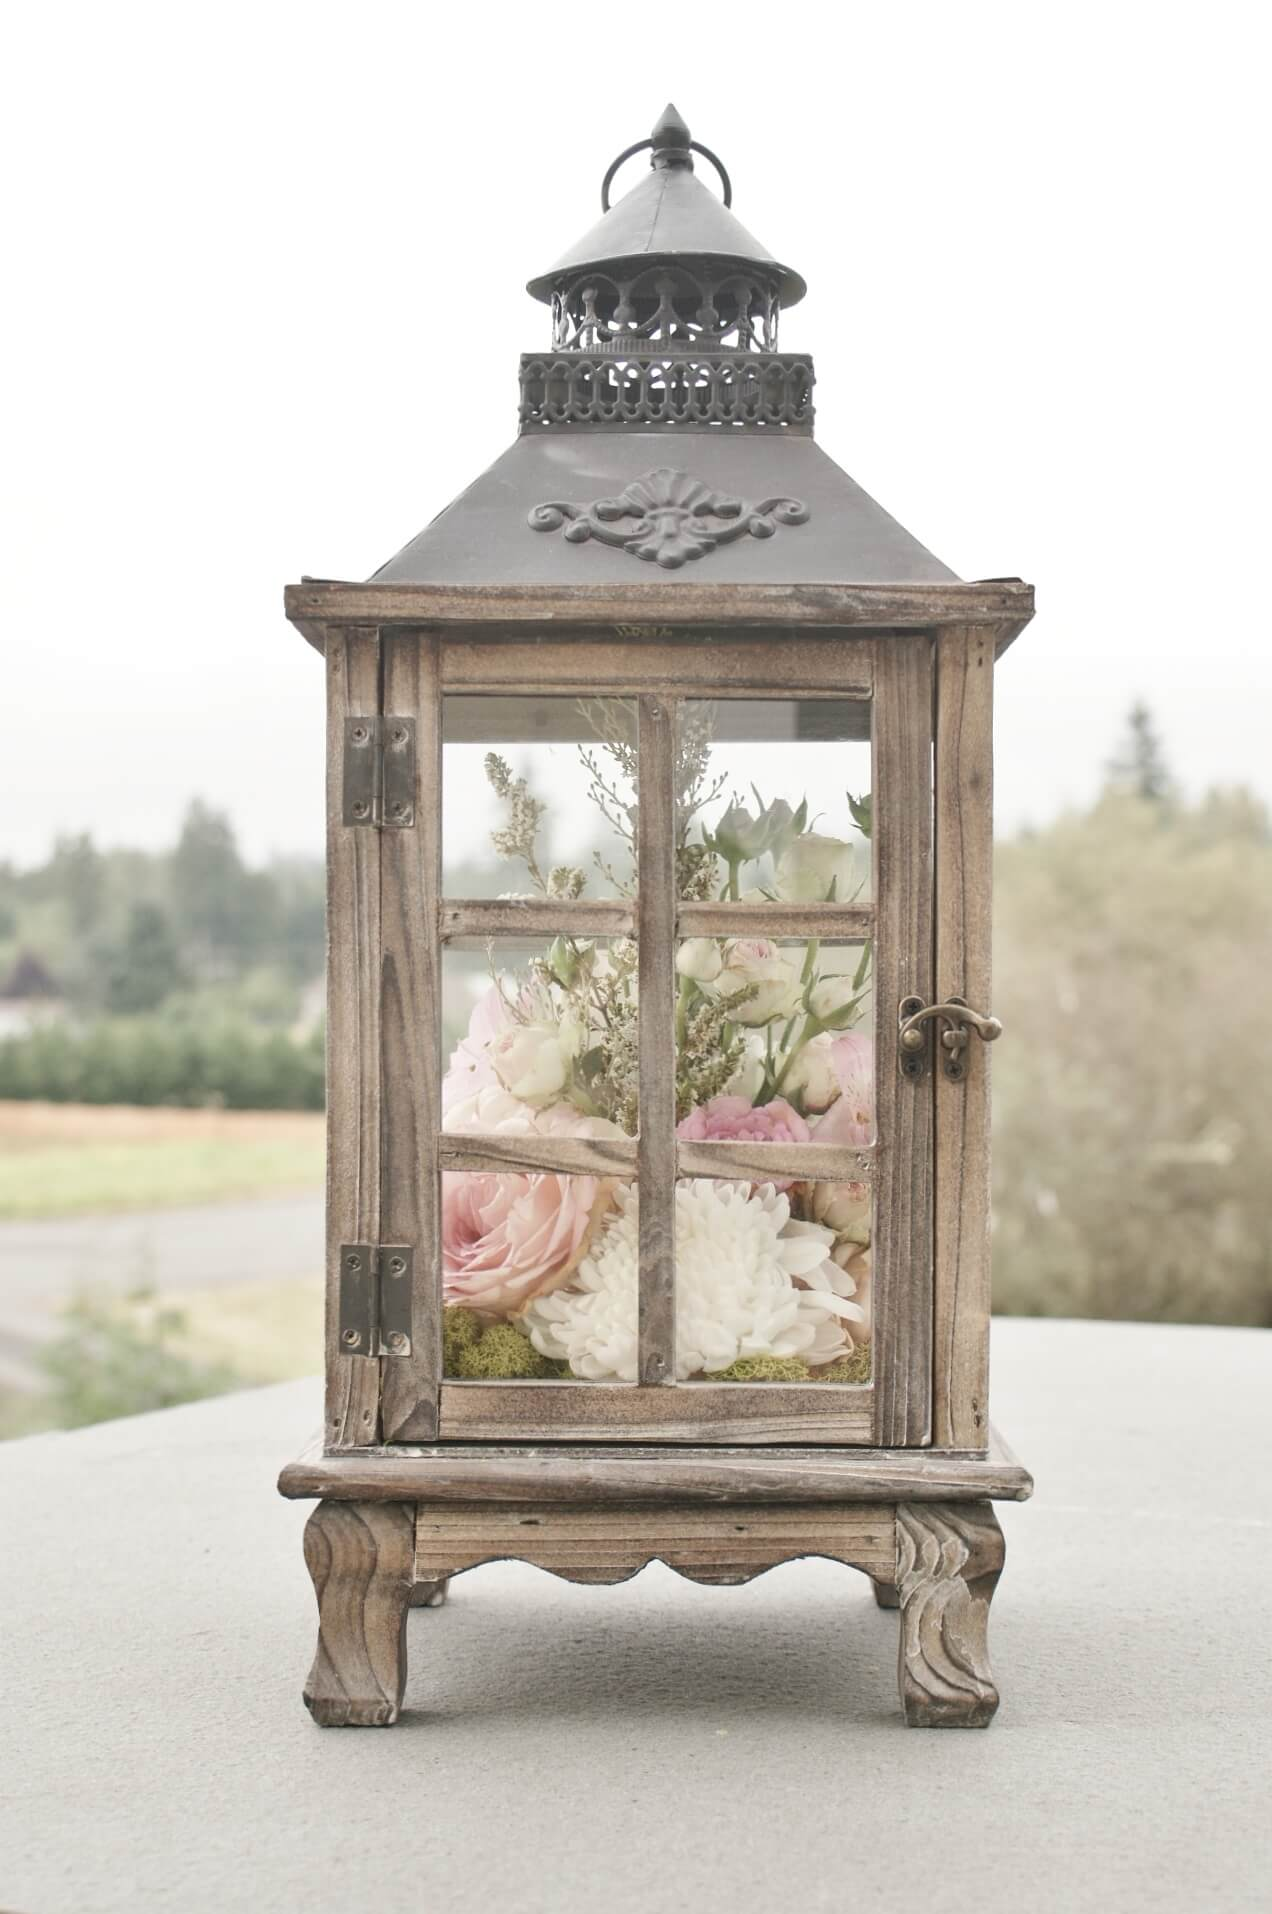 Rustic Lantern with Flower Arrangement